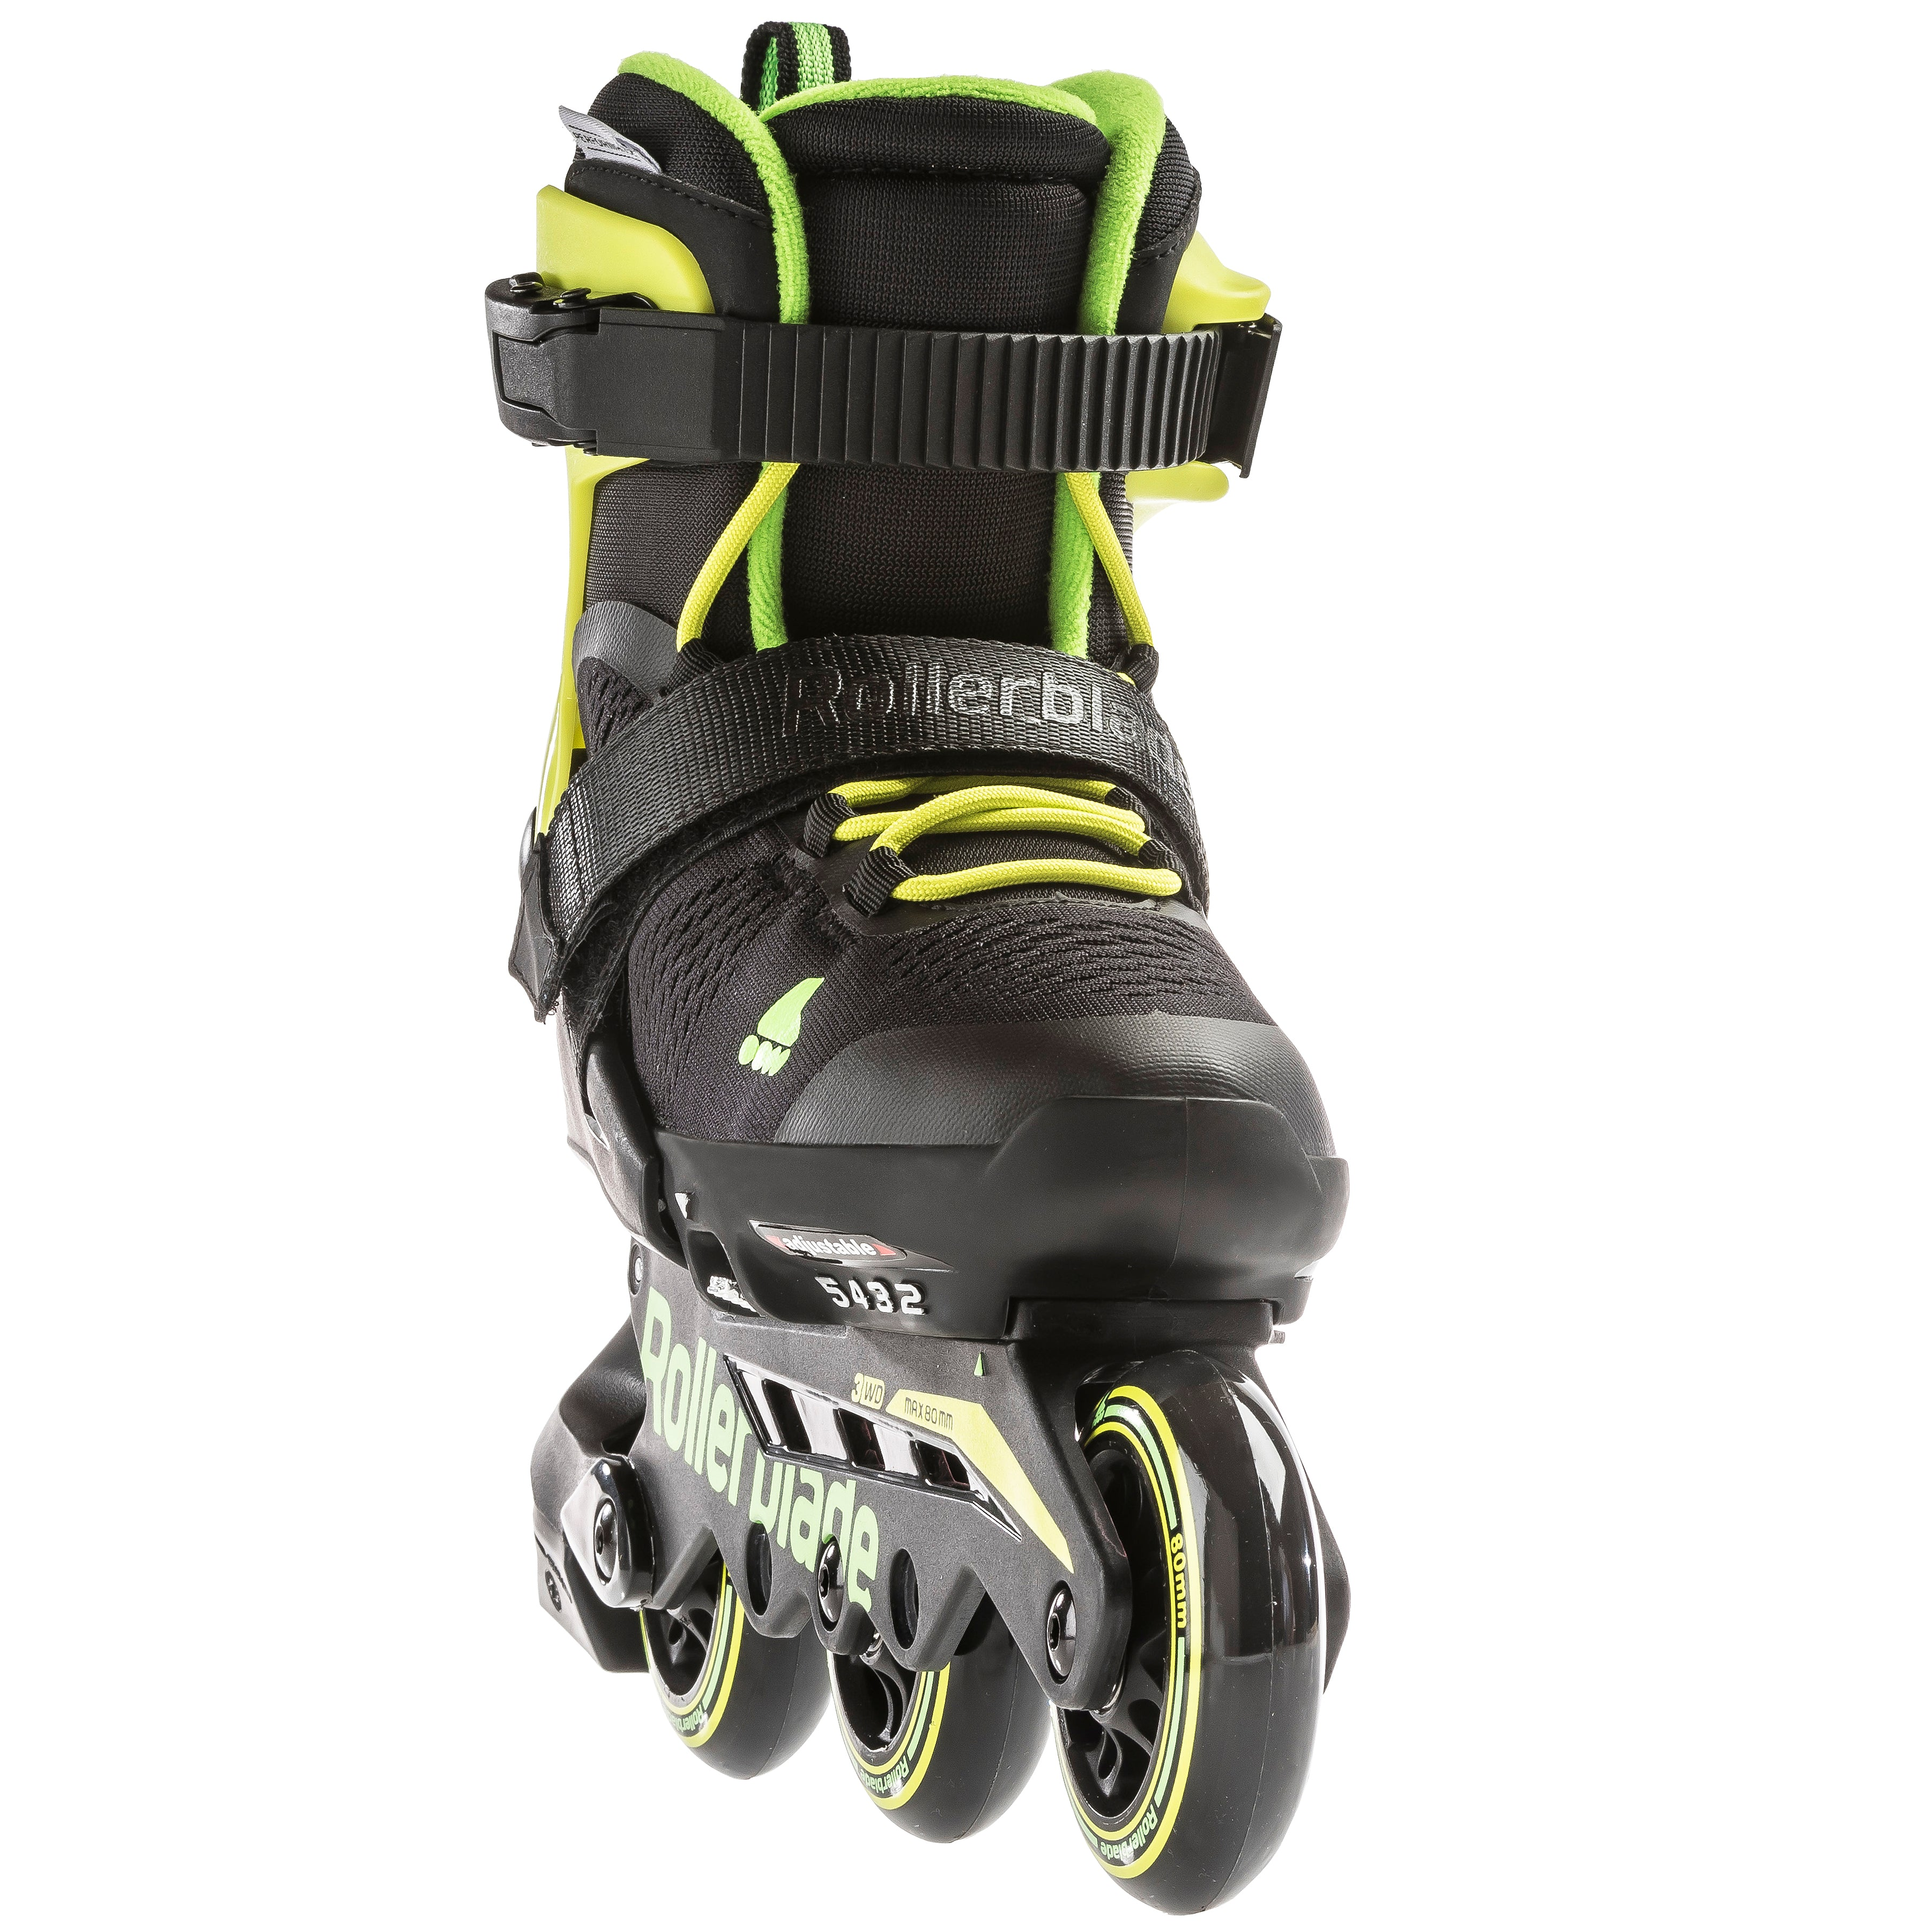 Rollerblade Unisex Youth MICROBLADE Free 3WD Inline Skates Anthracite//Lime 230